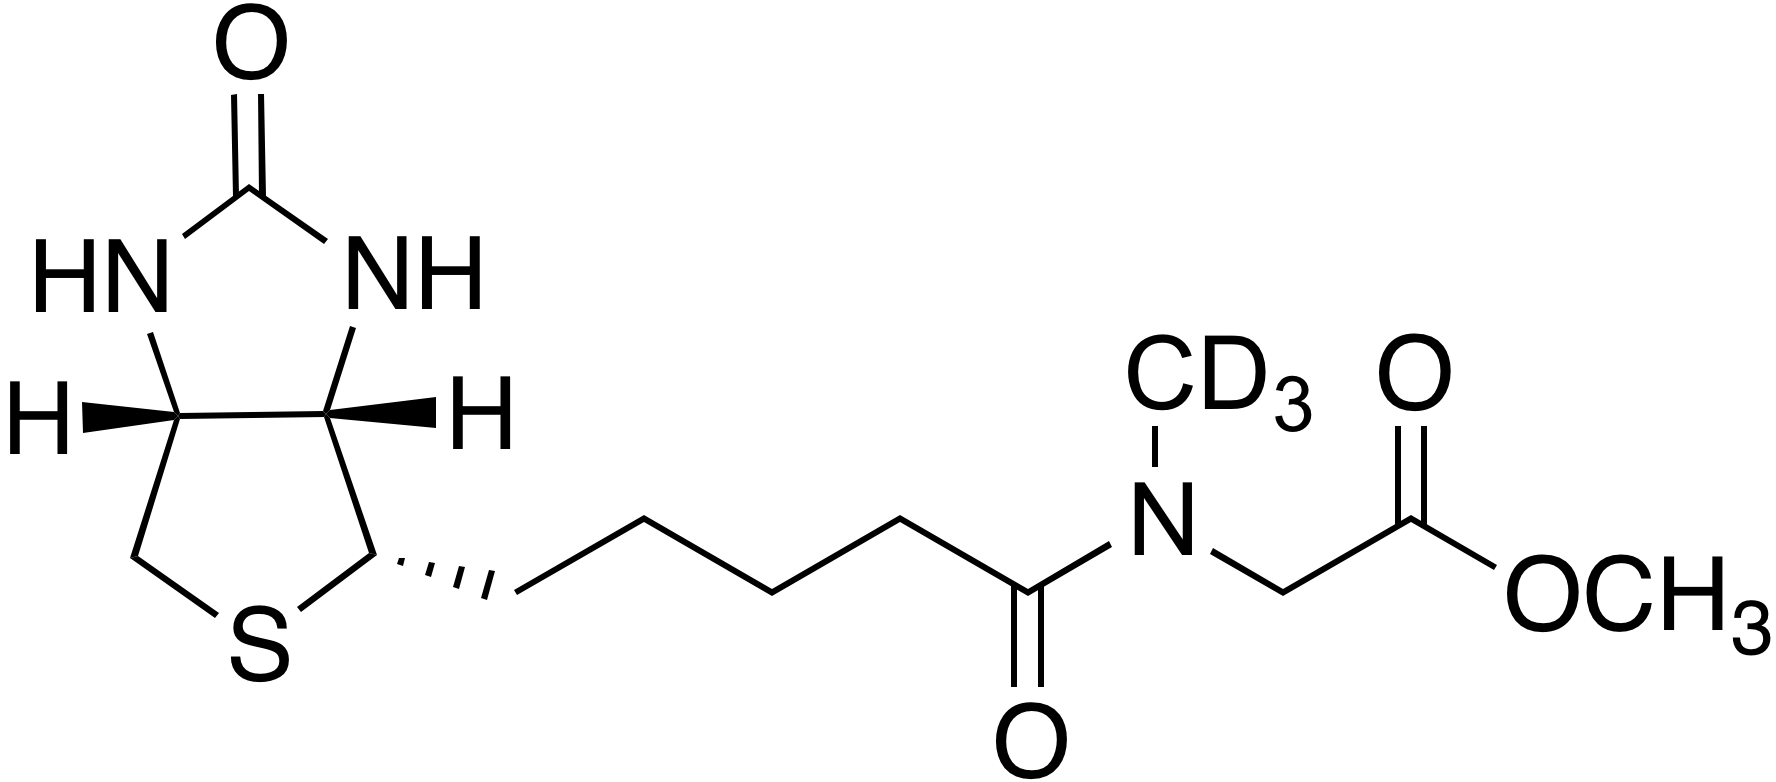 N-Methyl-d<sub>3</sub>-N-biotinyl glycine methyl ester